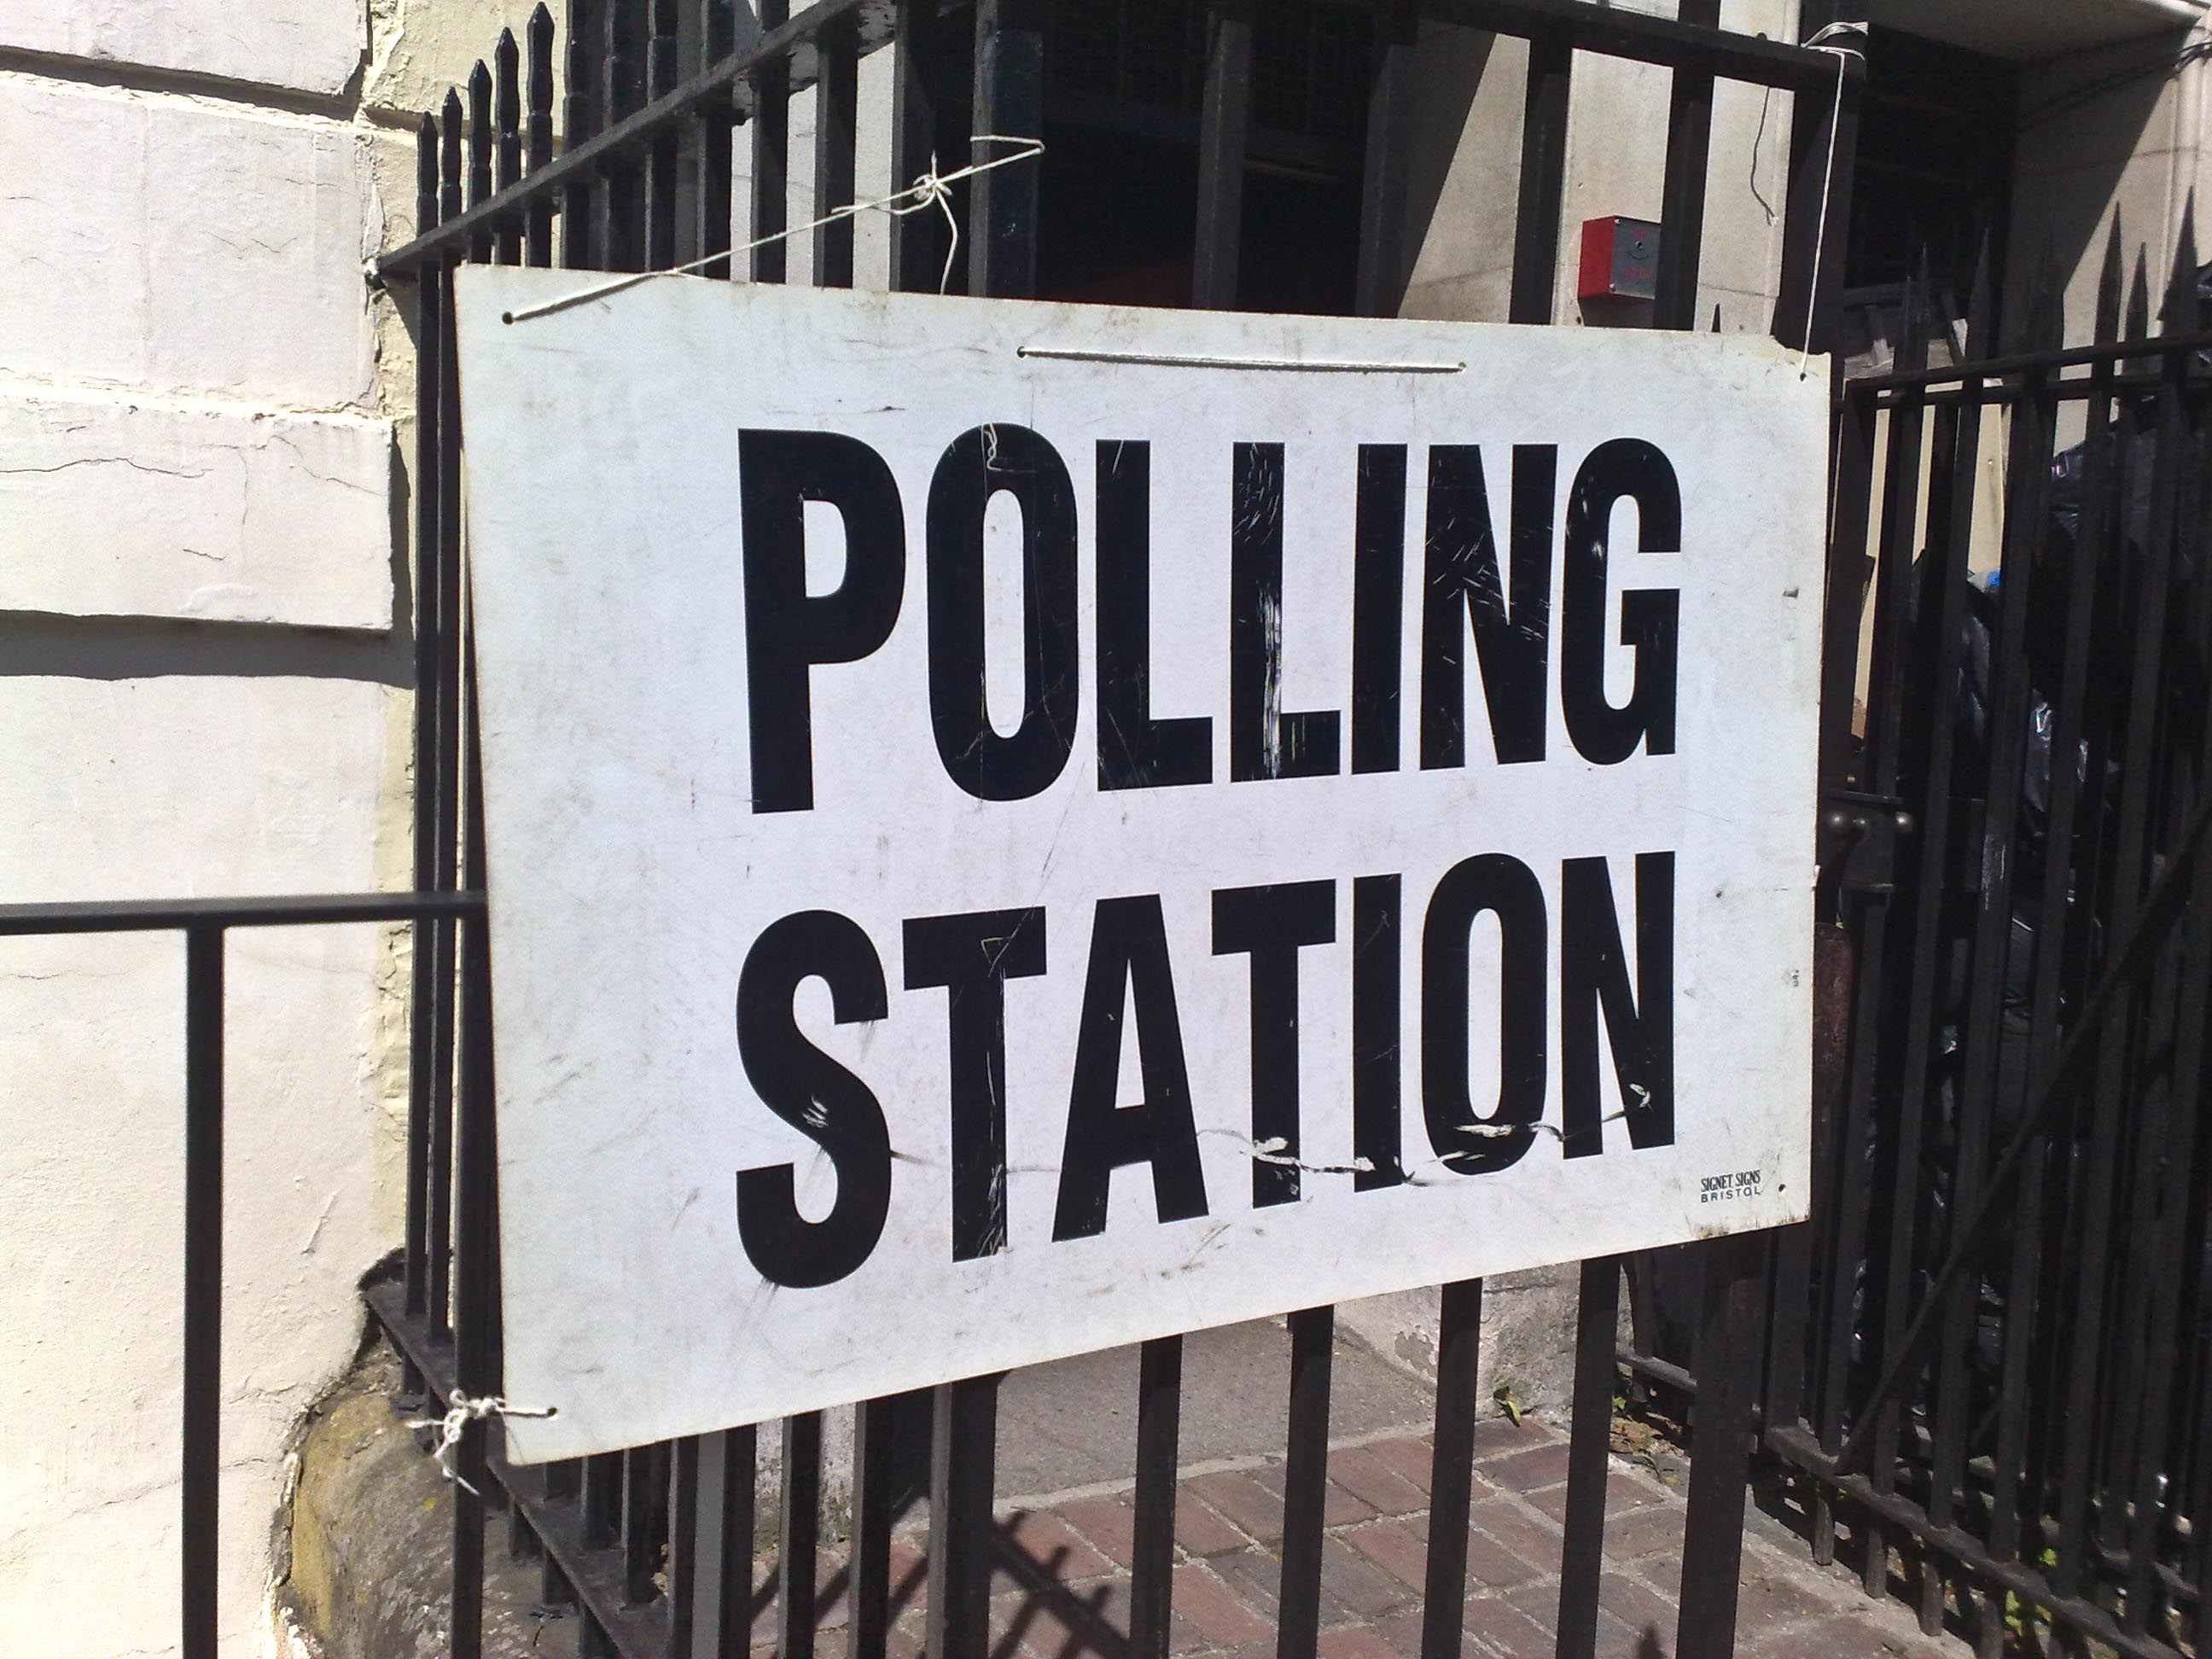 https://i2.wp.com/upload.wikimedia.org/wikipedia/commons/b/be/Polling_station_6_may_2010.jpg